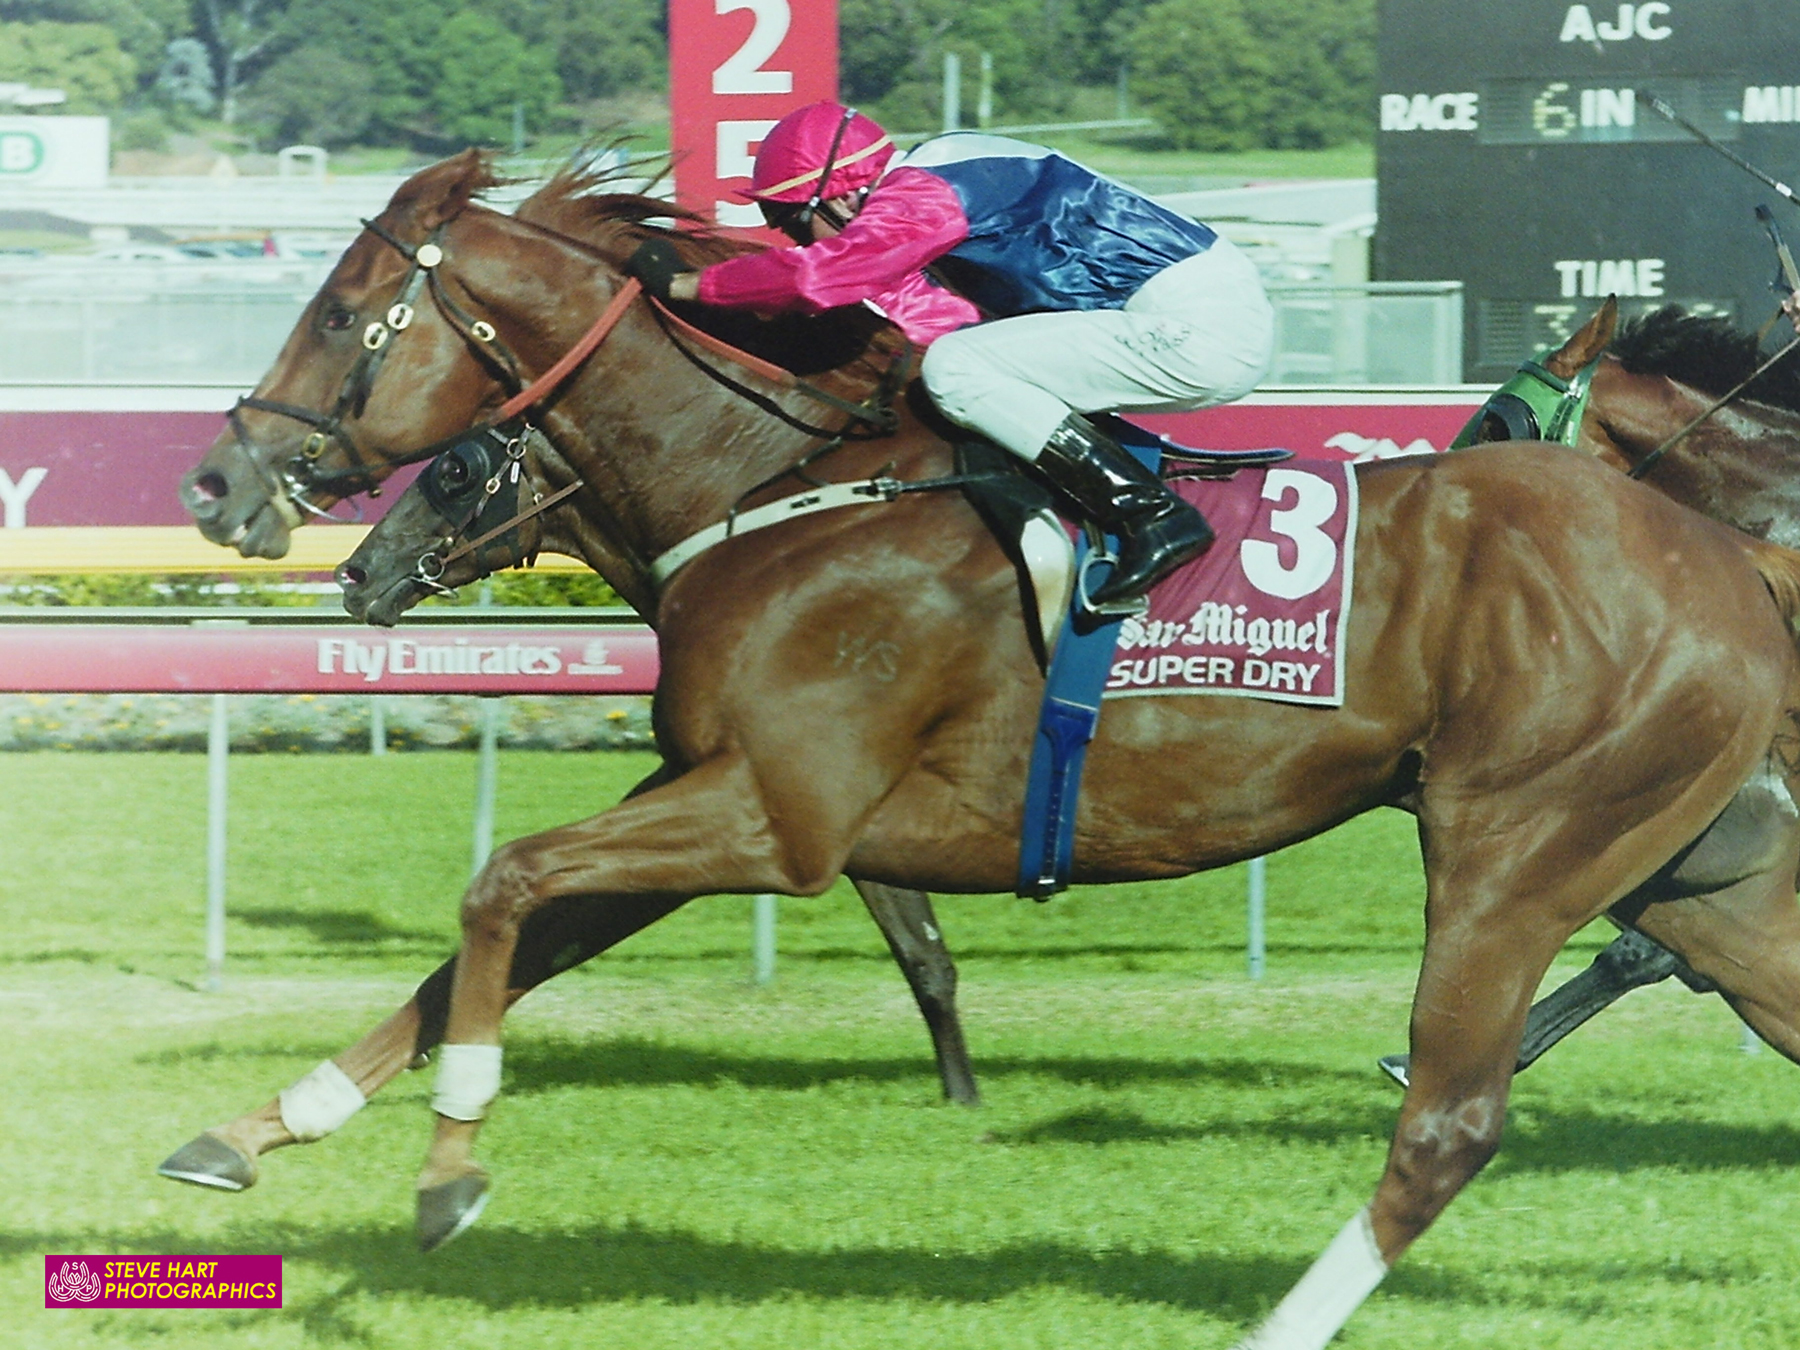 """Image courtesy Steve Hart Photographics - Starcraft gets up to beat """"the bolter"""" Braeloch, in the 2004 Australian Derby."""